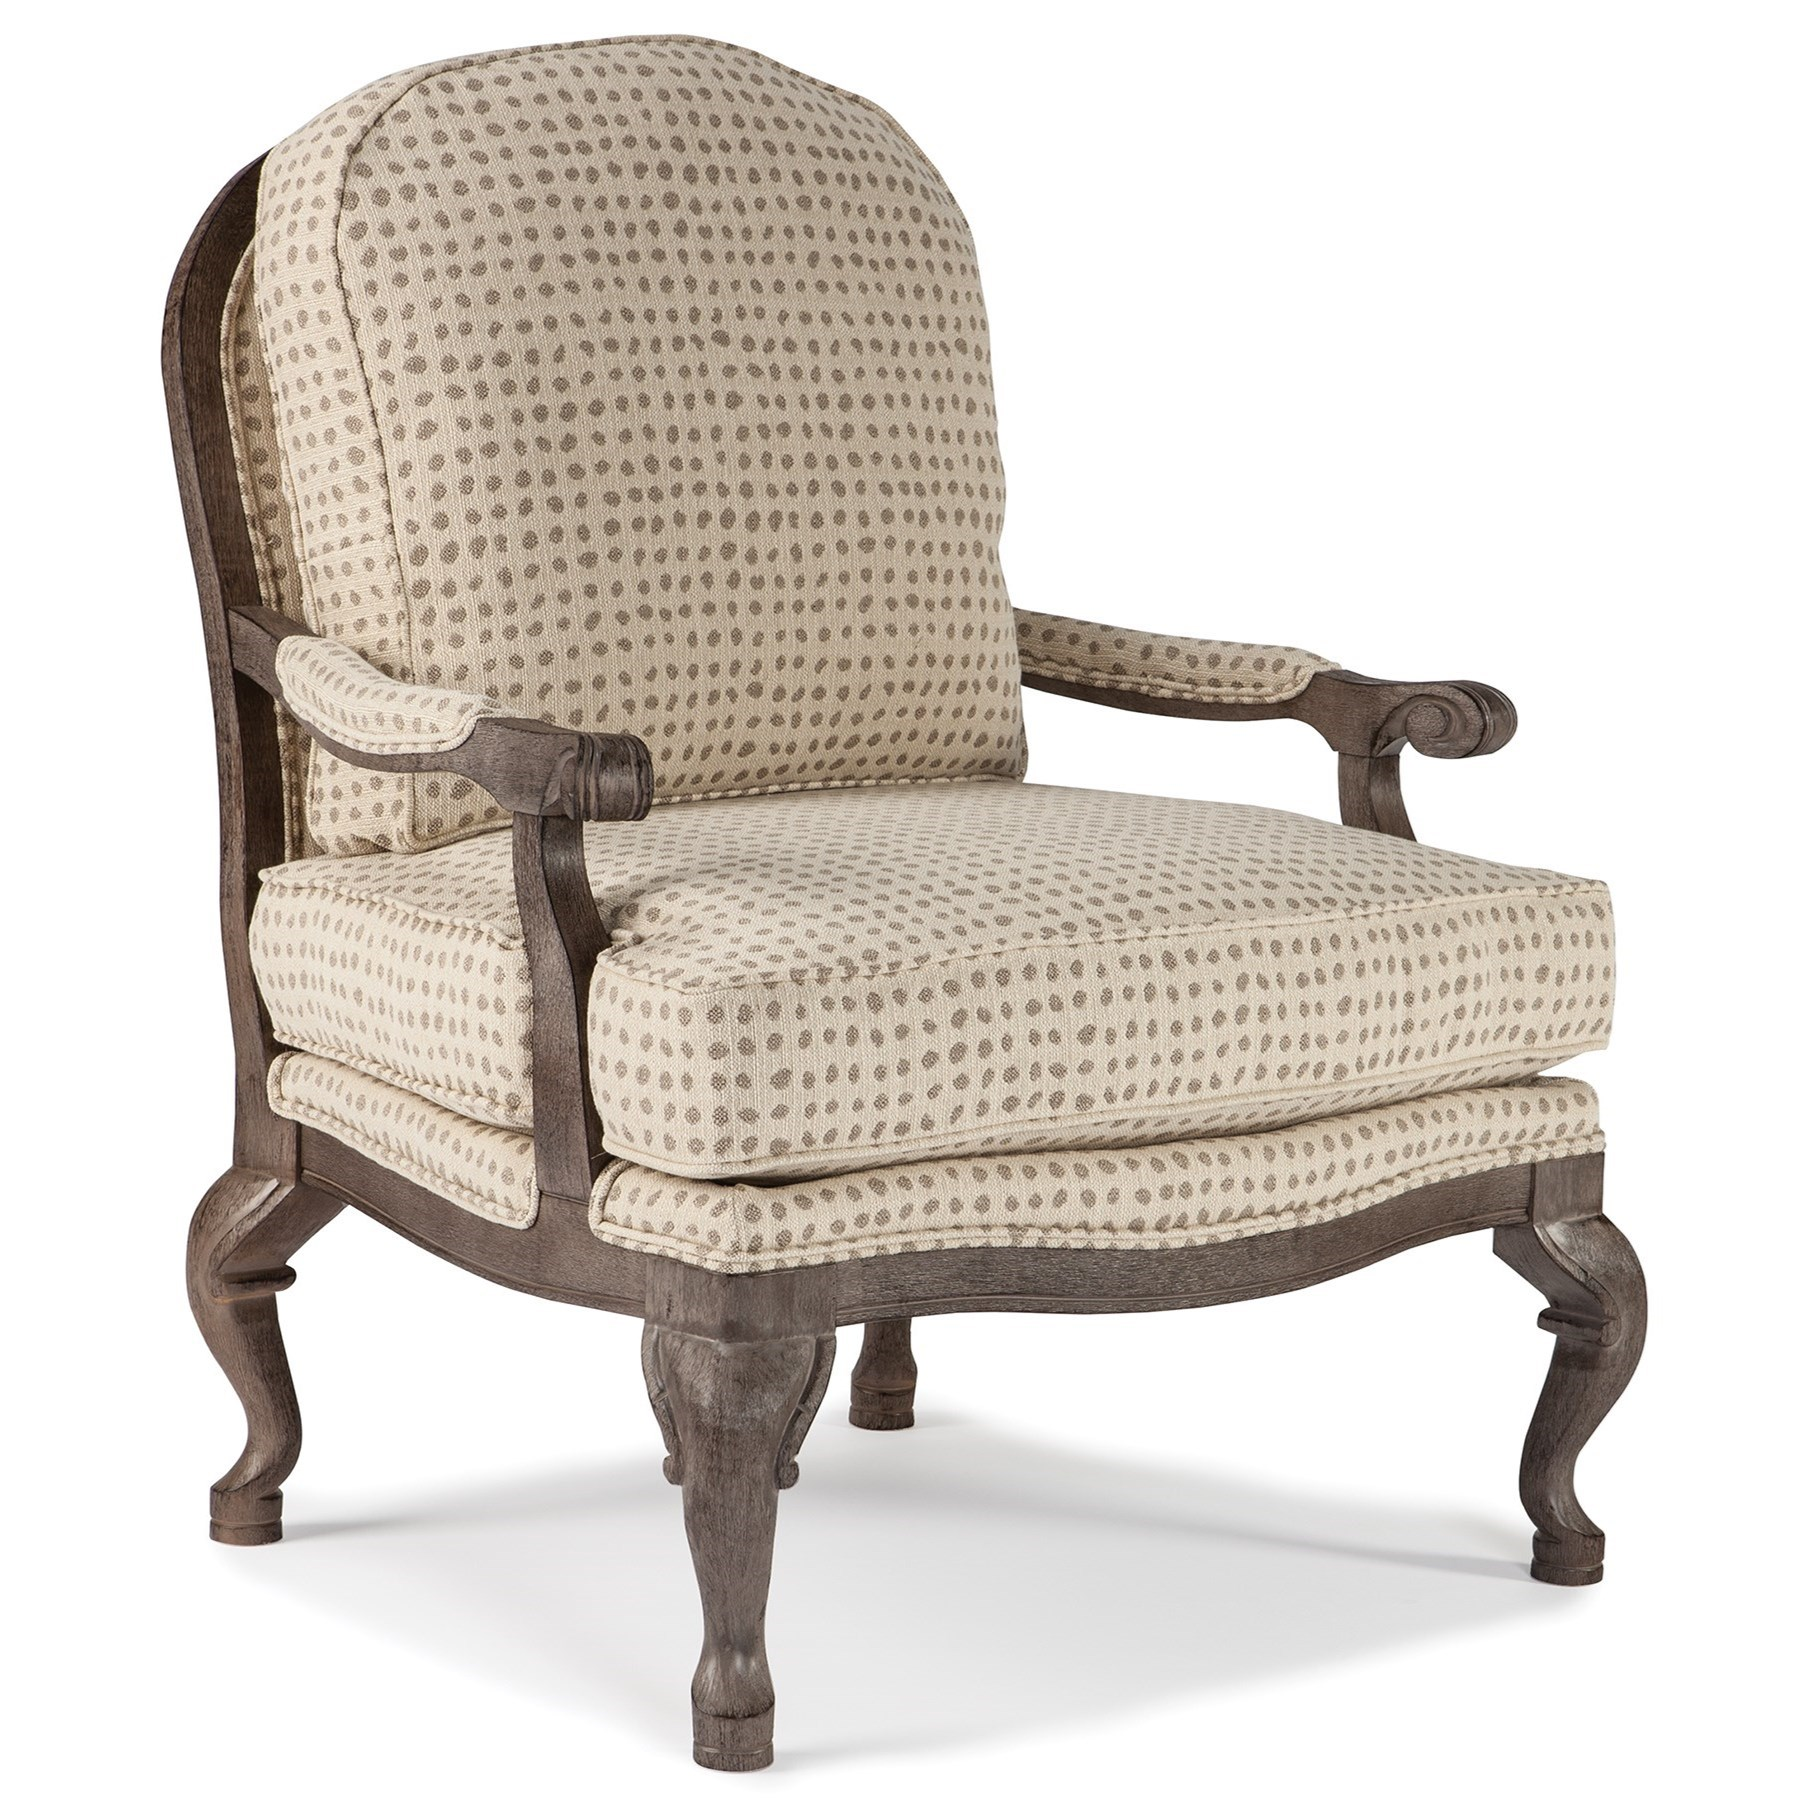 Best home furnishings chairs accent 3410 cogan exposed for Best furniture for home